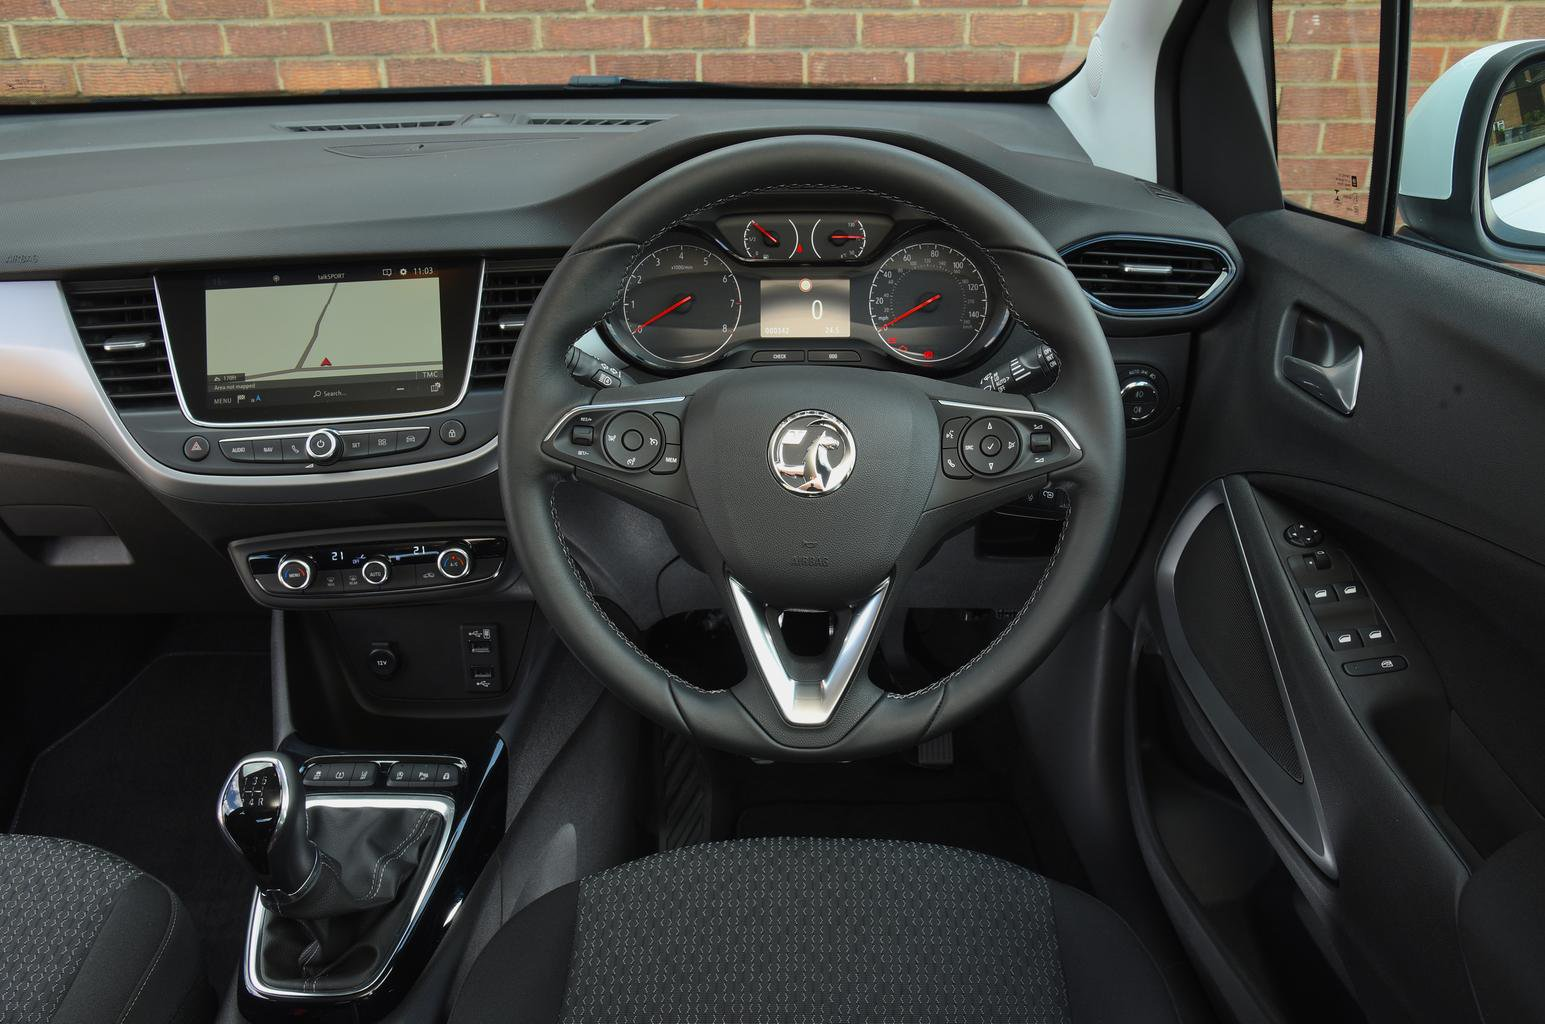 Vauxhall Crossland X Interior Sat Nav Dashboard What Car